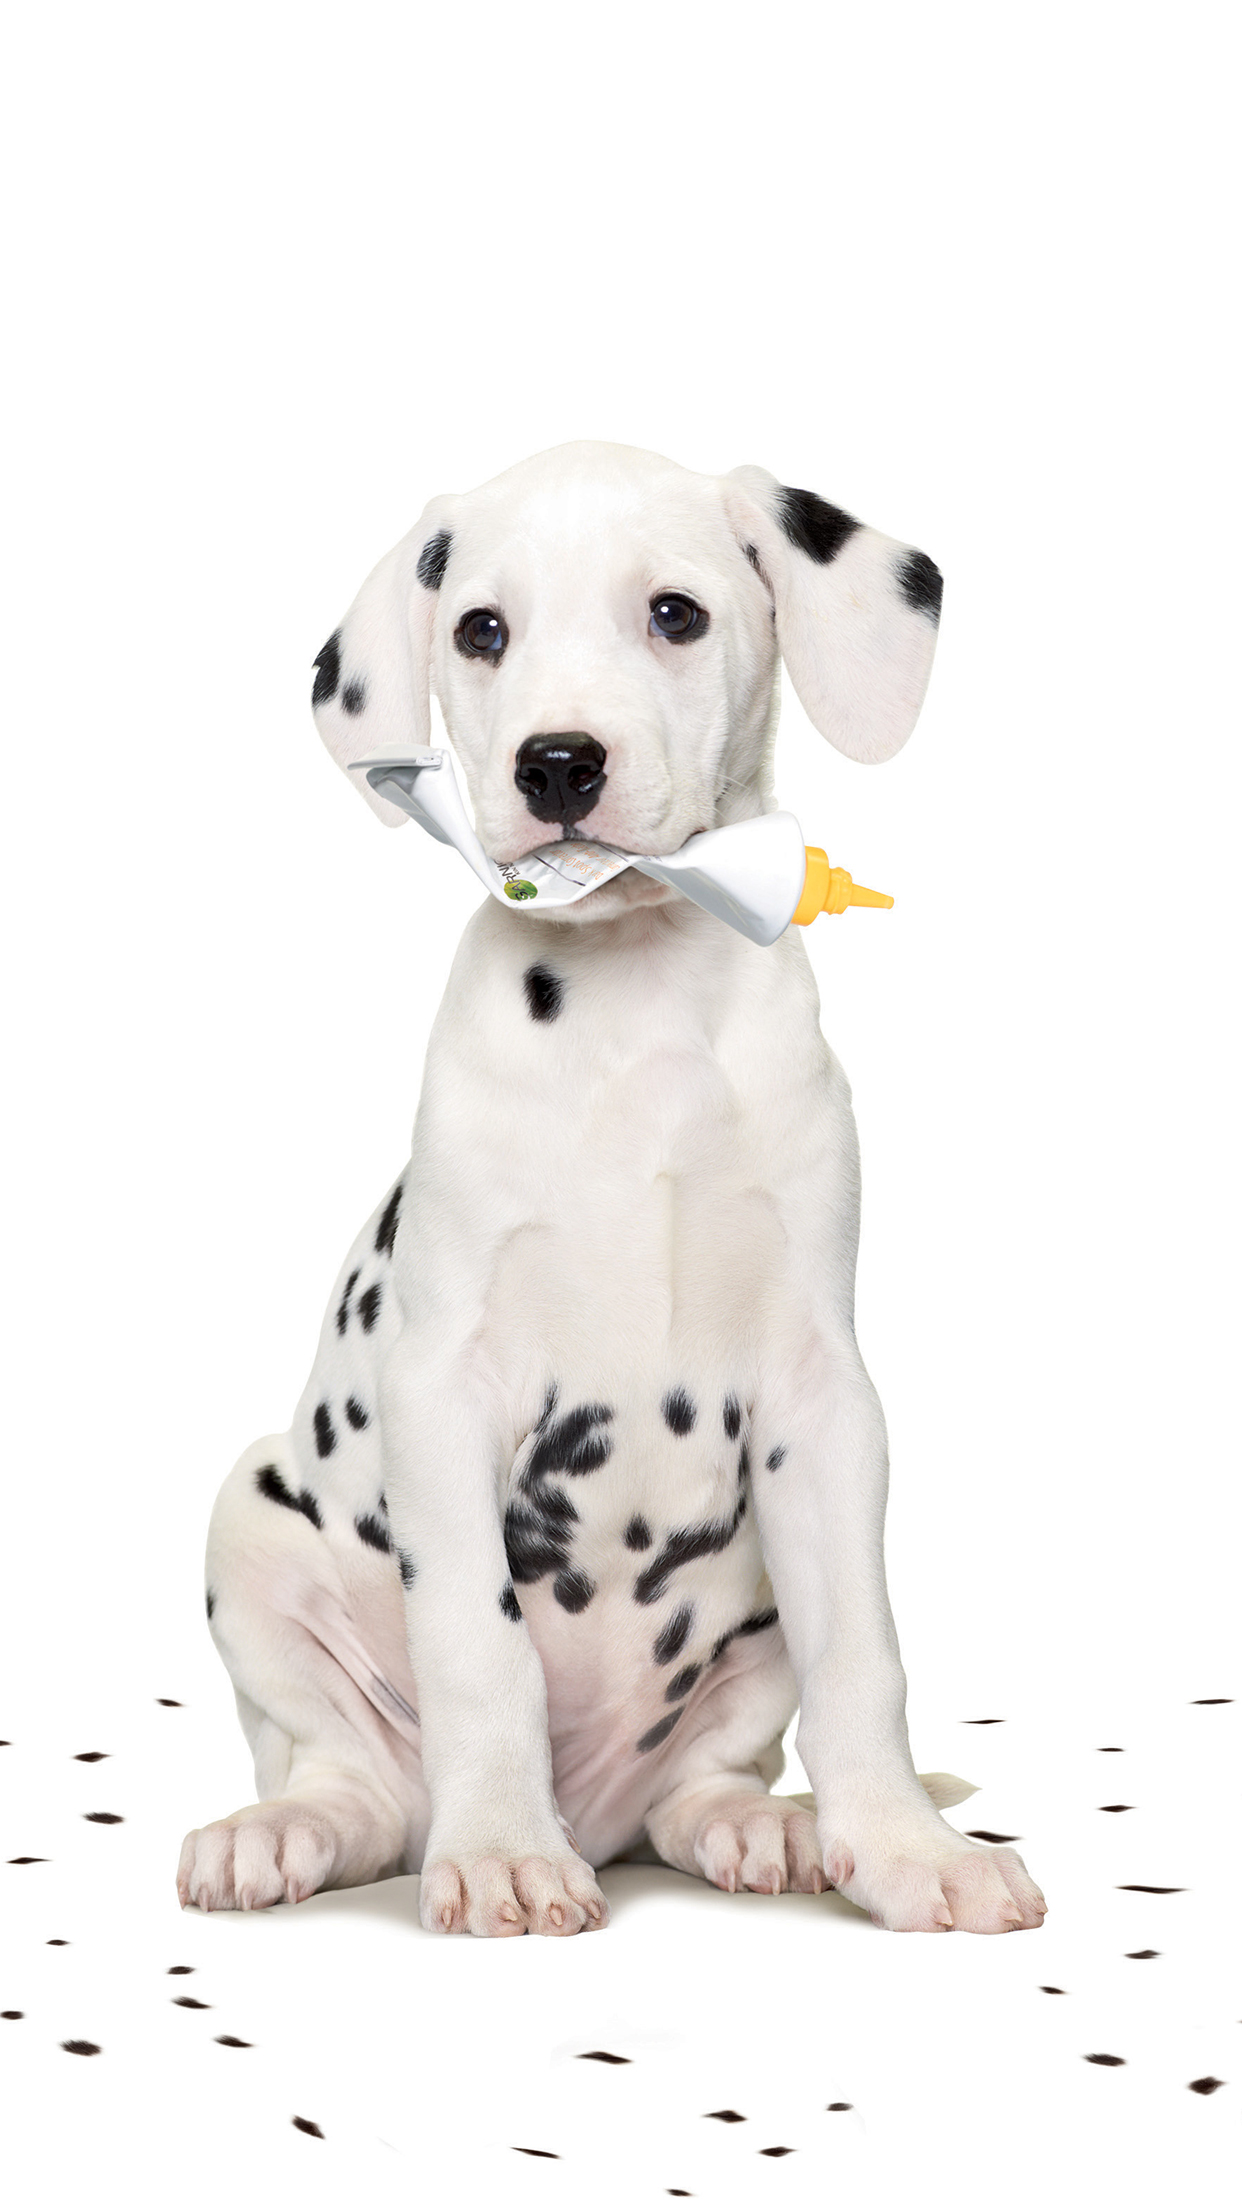 Dalmatian Baby iPhone 3Wallpapers Parallax Les 3 Wallpapers iPhone du jour (17/05/2015)